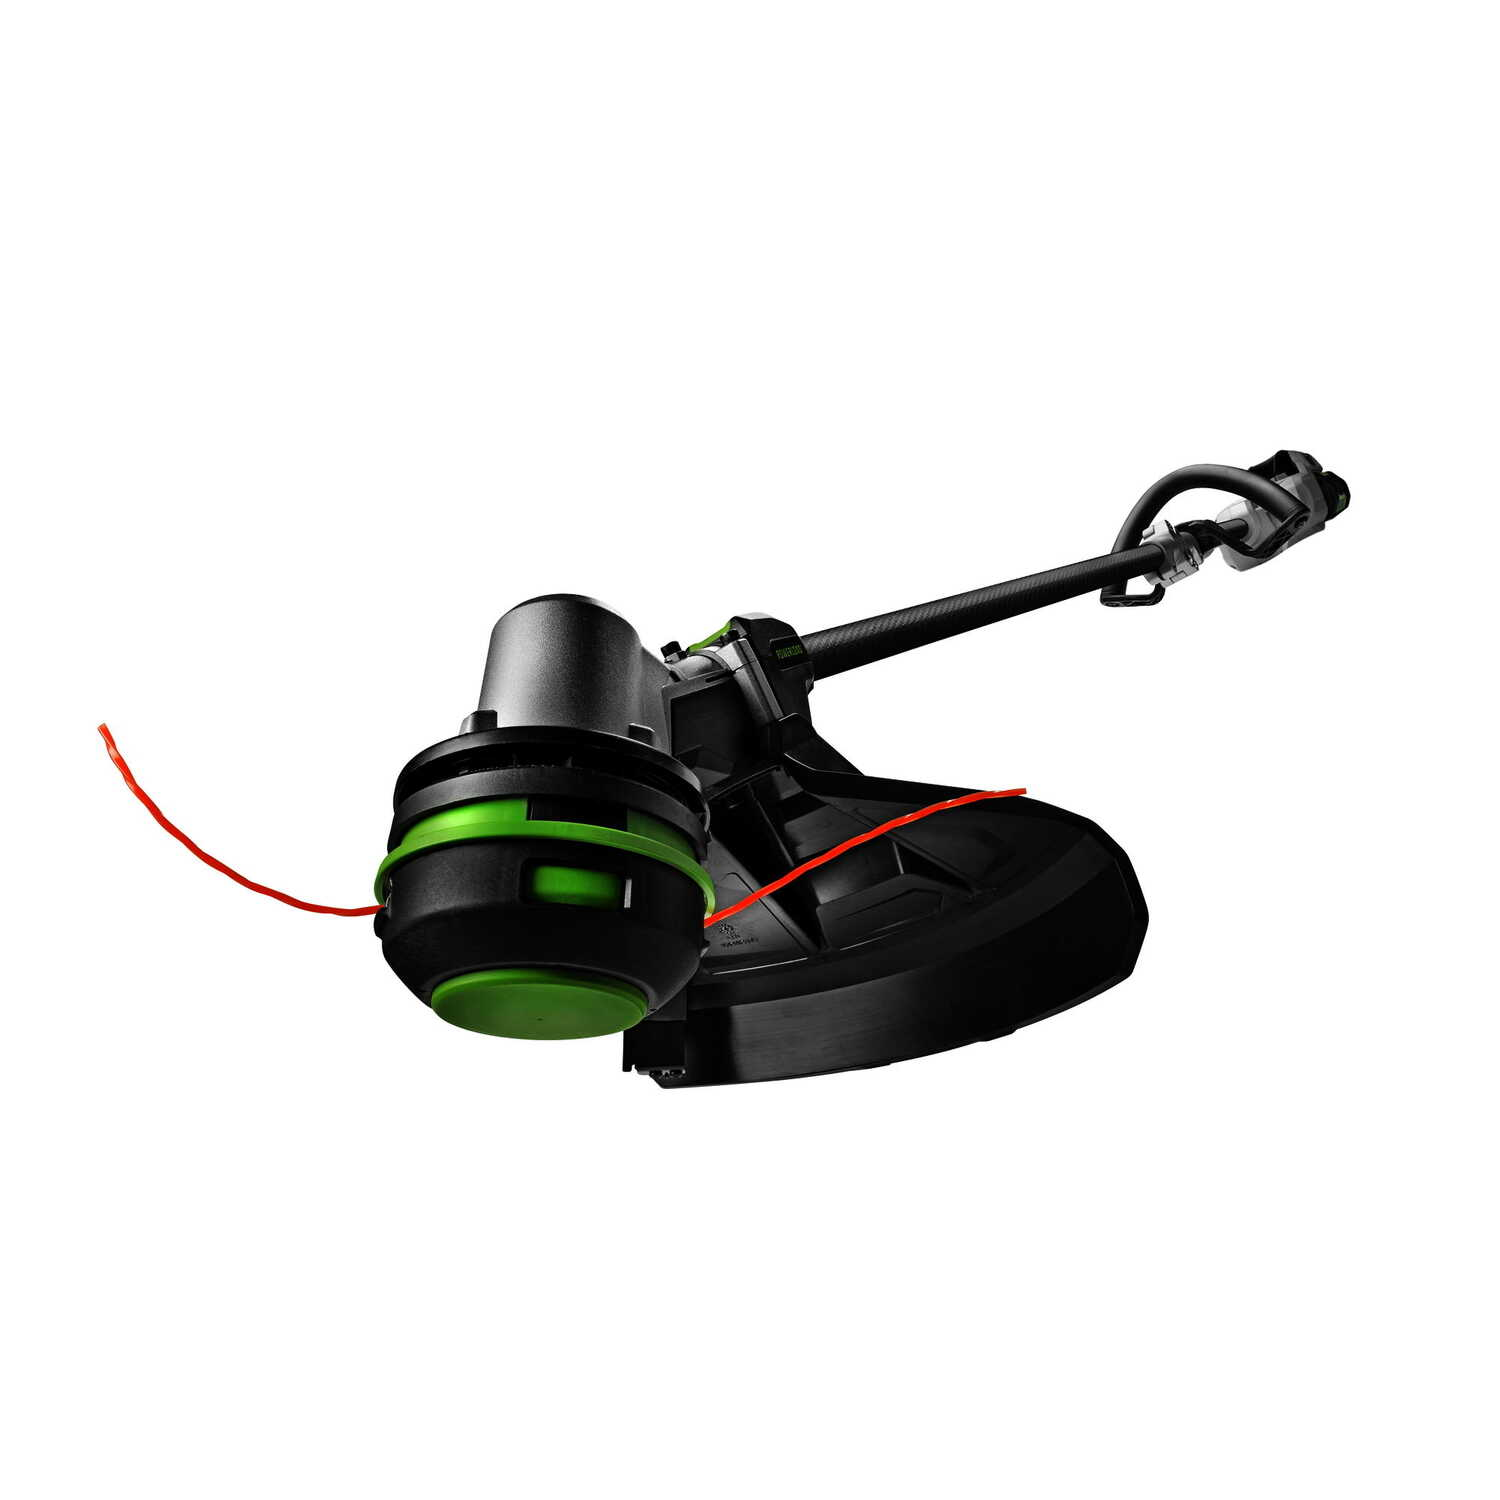 EGO  Power Plus  Straight Shaft  Battery  String Trimmer